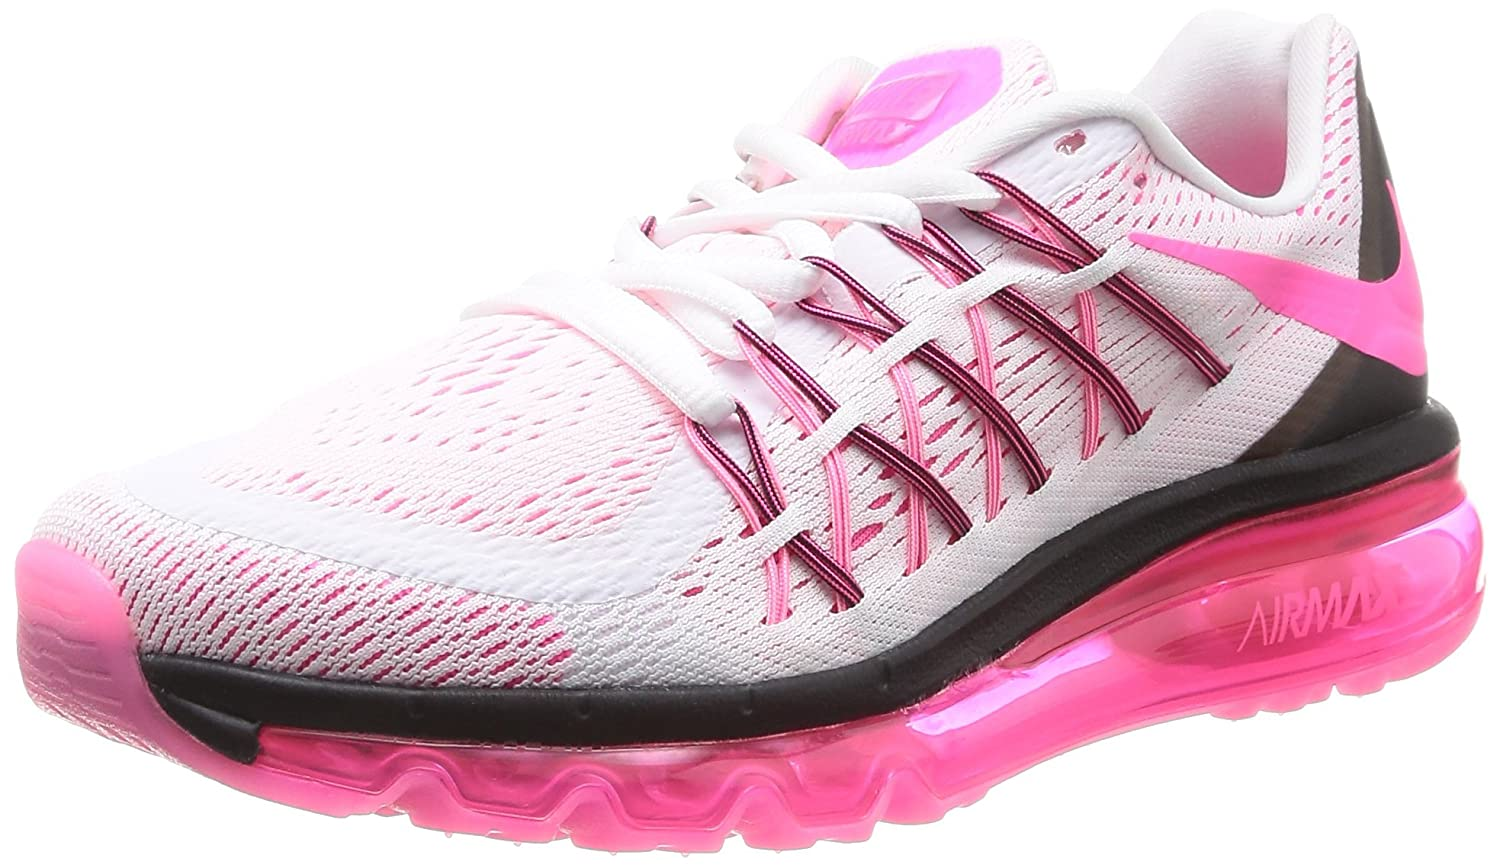 b3afd9ed8278 Amazon.com  NIKE Women s Air Max 2015 White Pink Poe Black Running Shoe 7.5  Women US  Sports   Outdoors